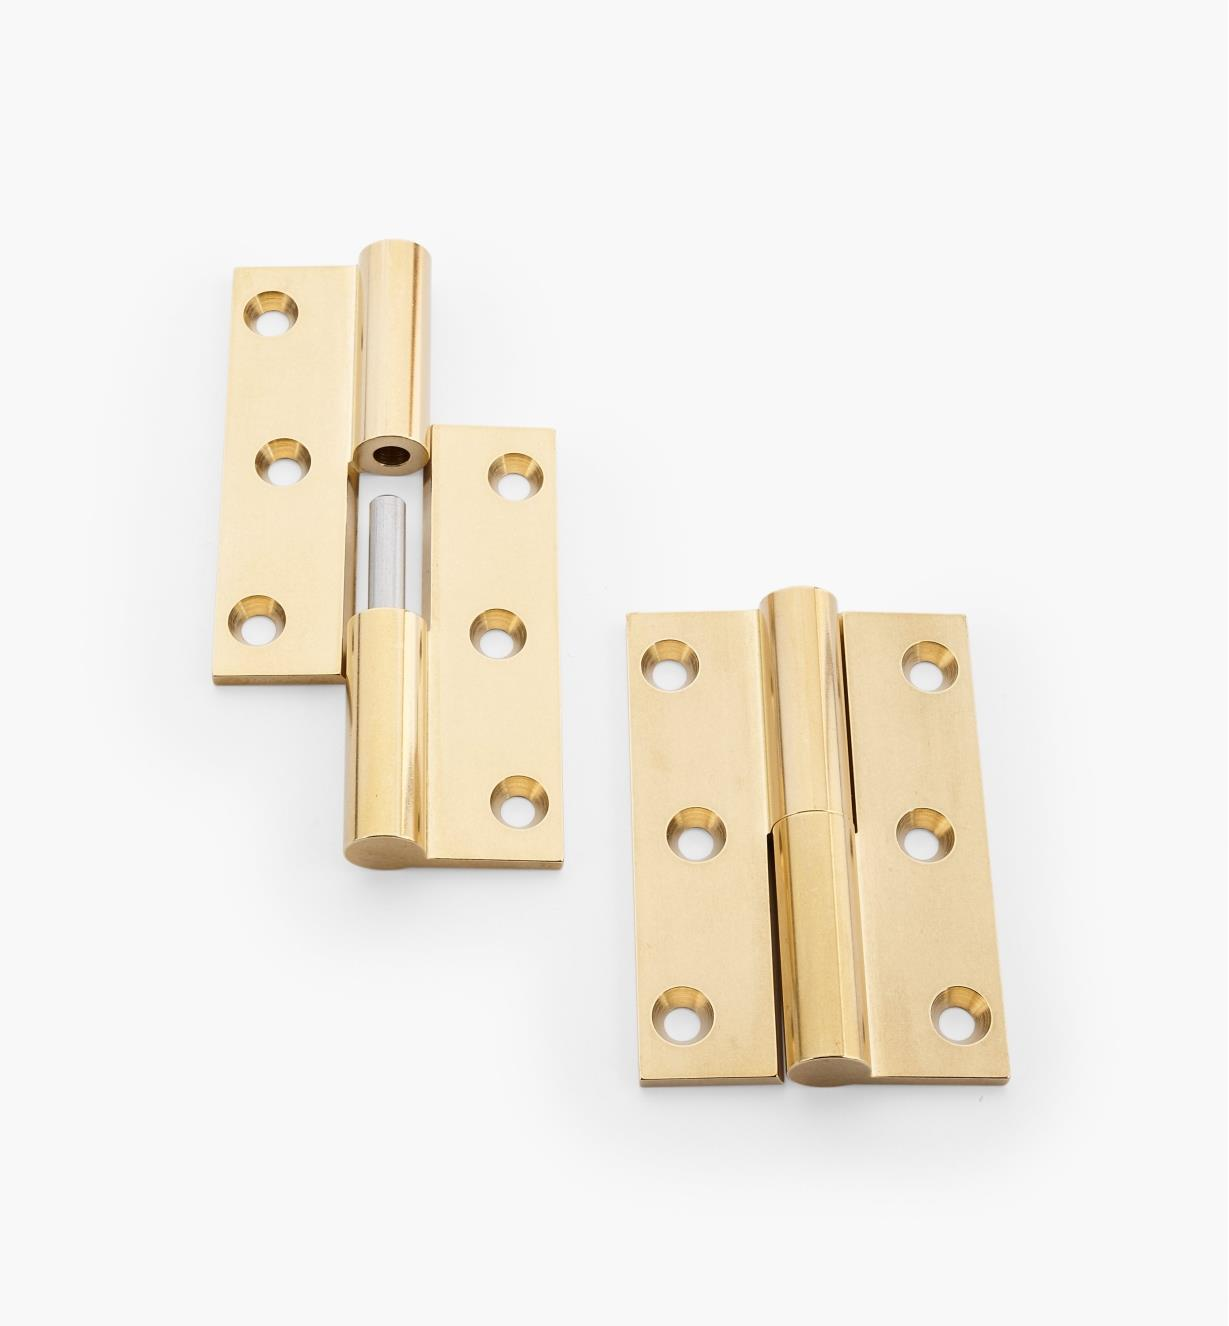 "01B1451 - 2 1/2"" Right Hinges, pair"